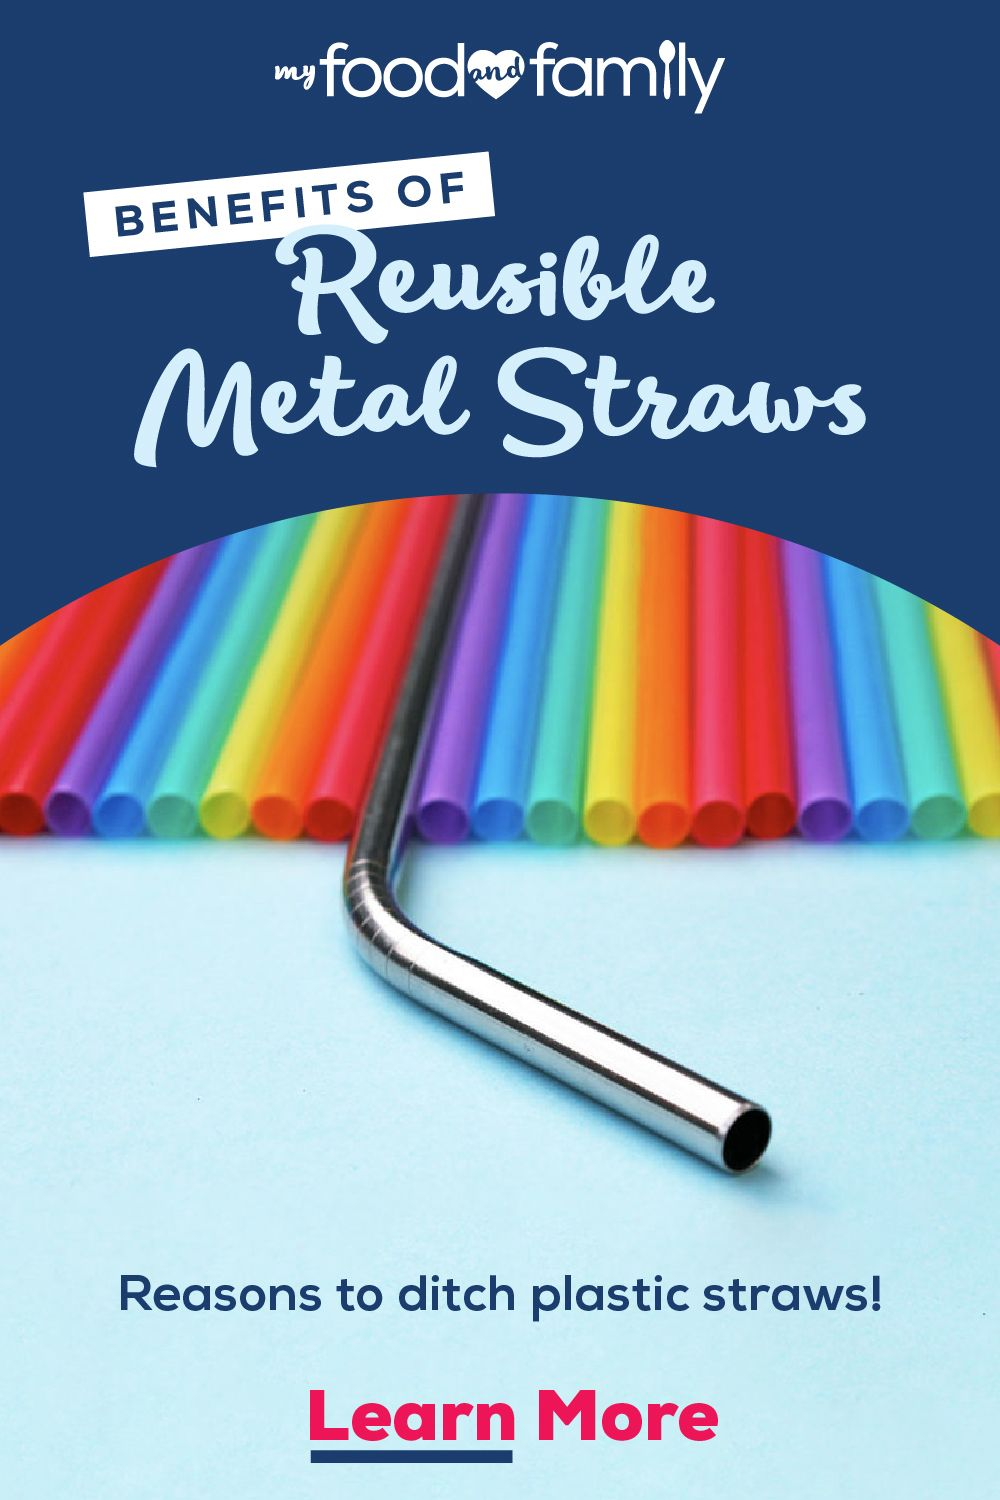 What Are The Benefits of Using Collapsible Metal Straws?